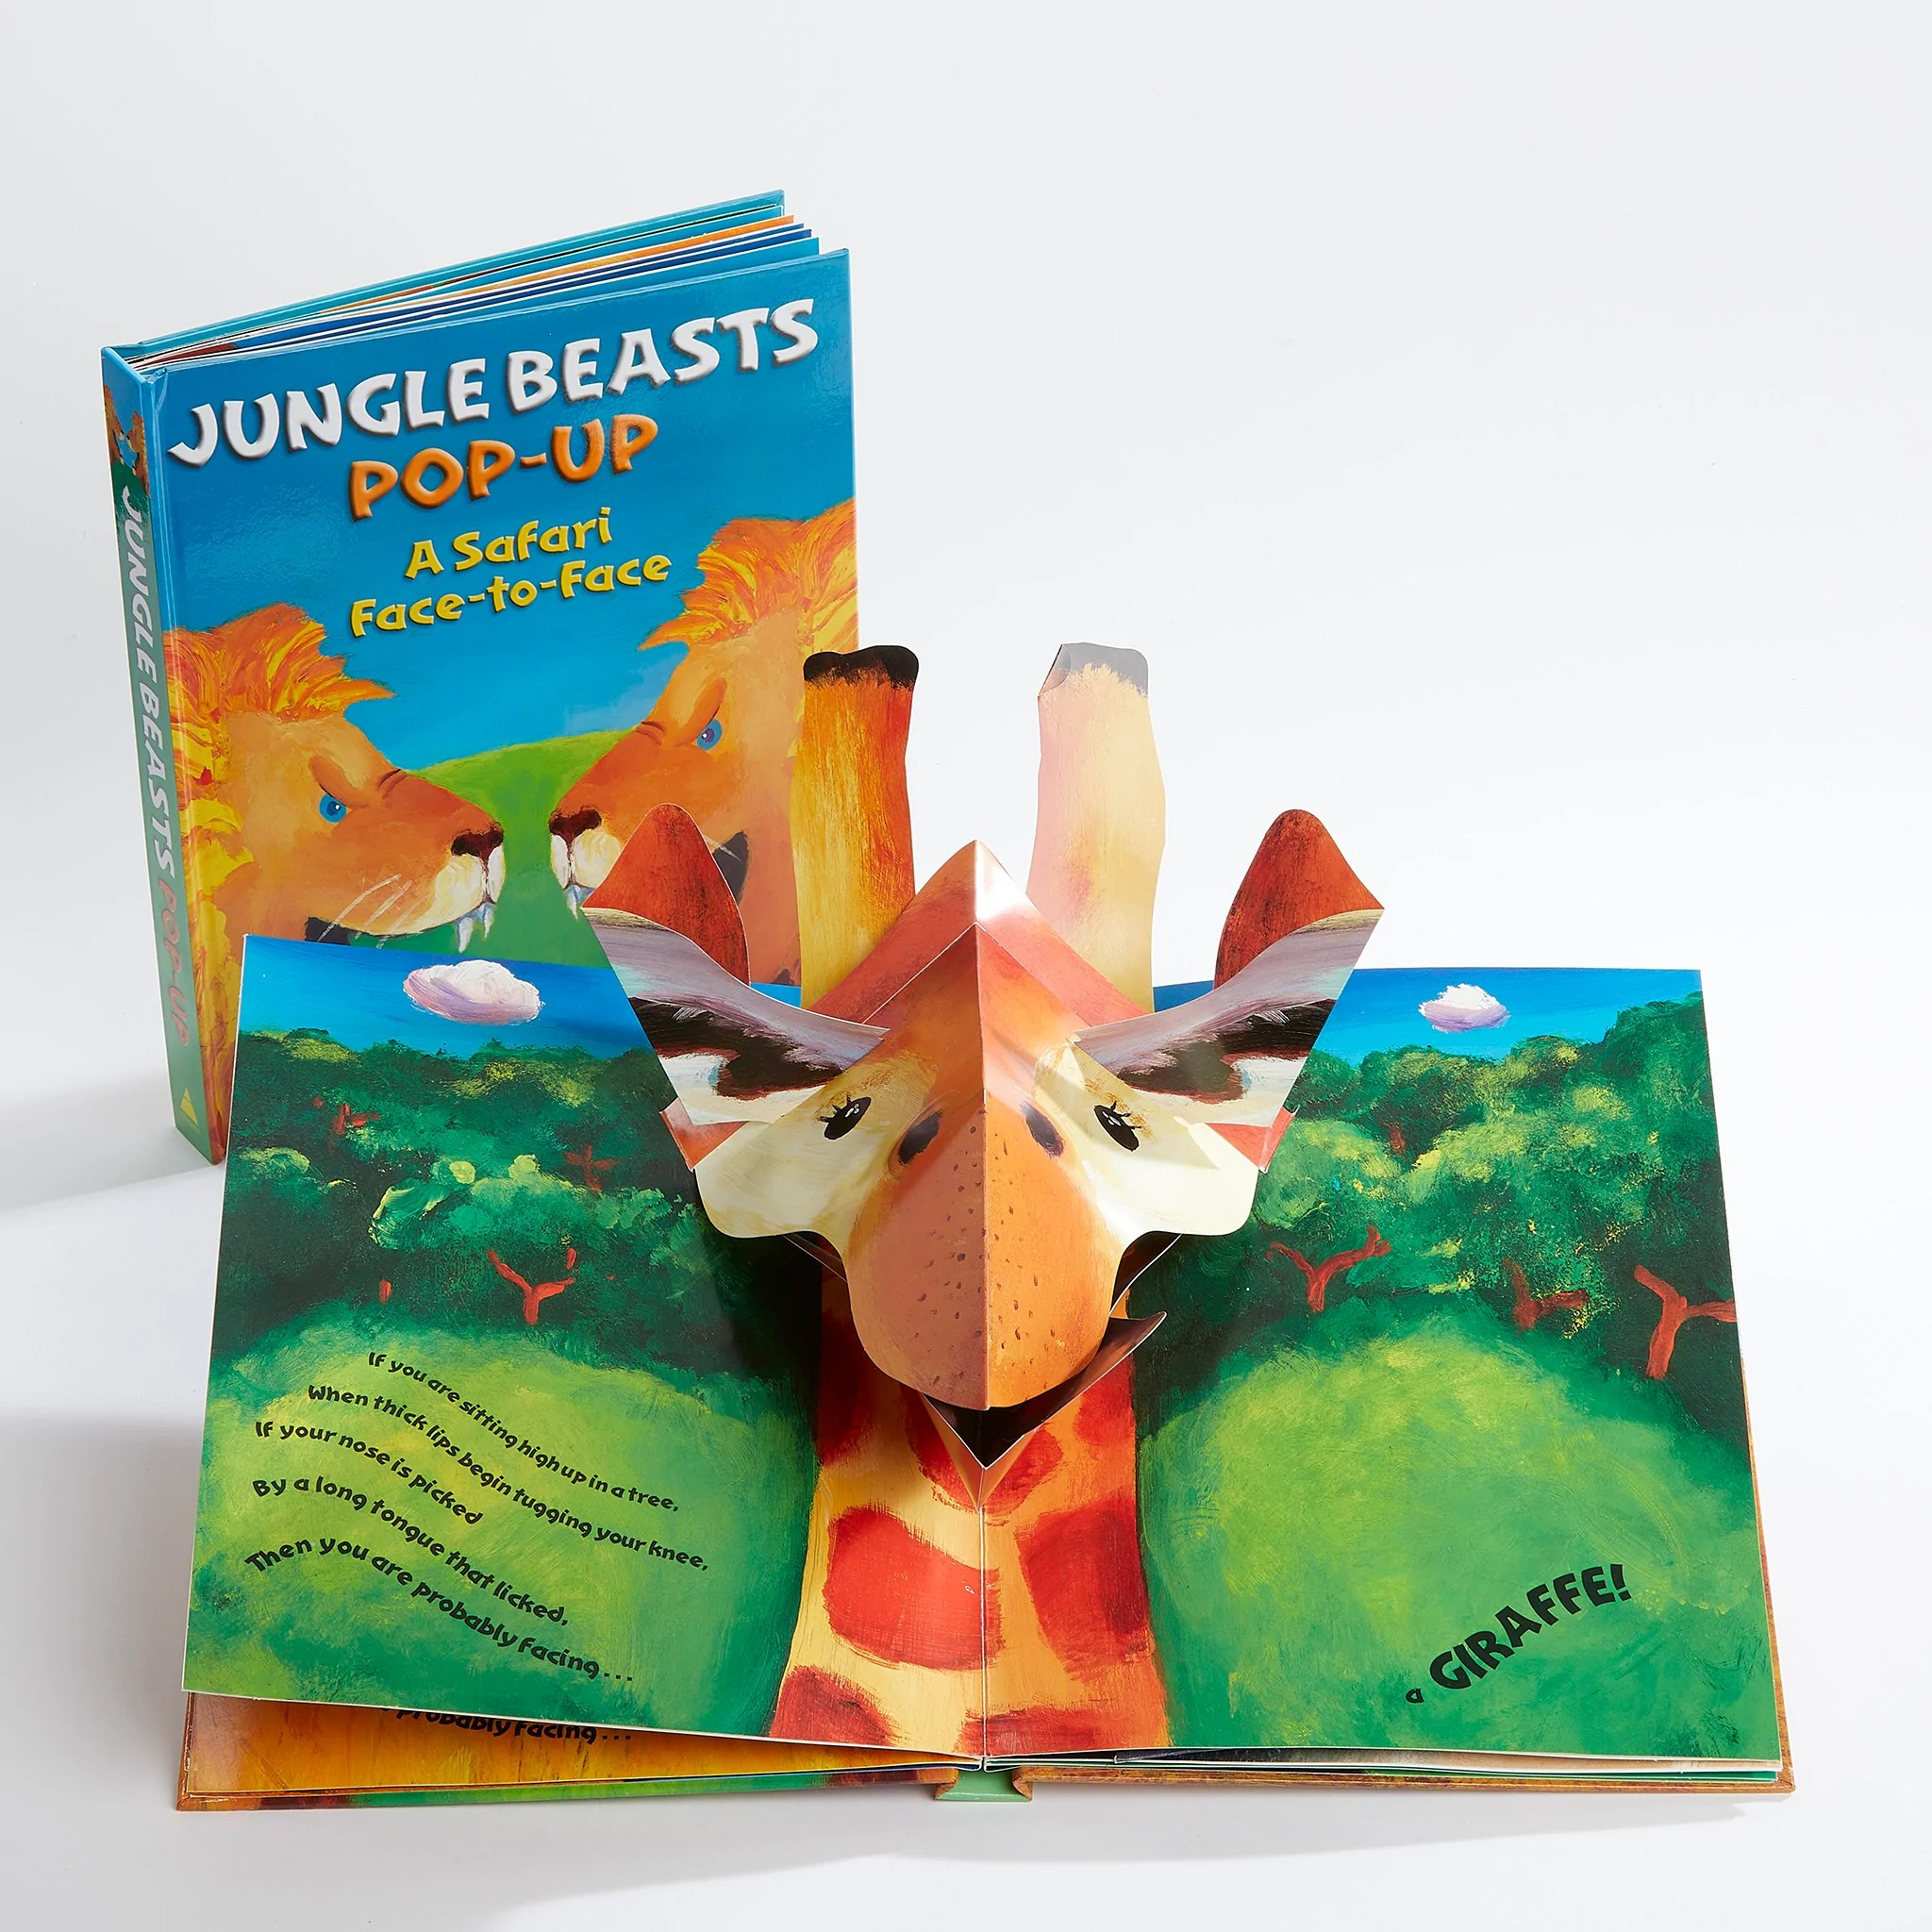 Pop Up Book Cover Jungle Beasts Pop Up Book